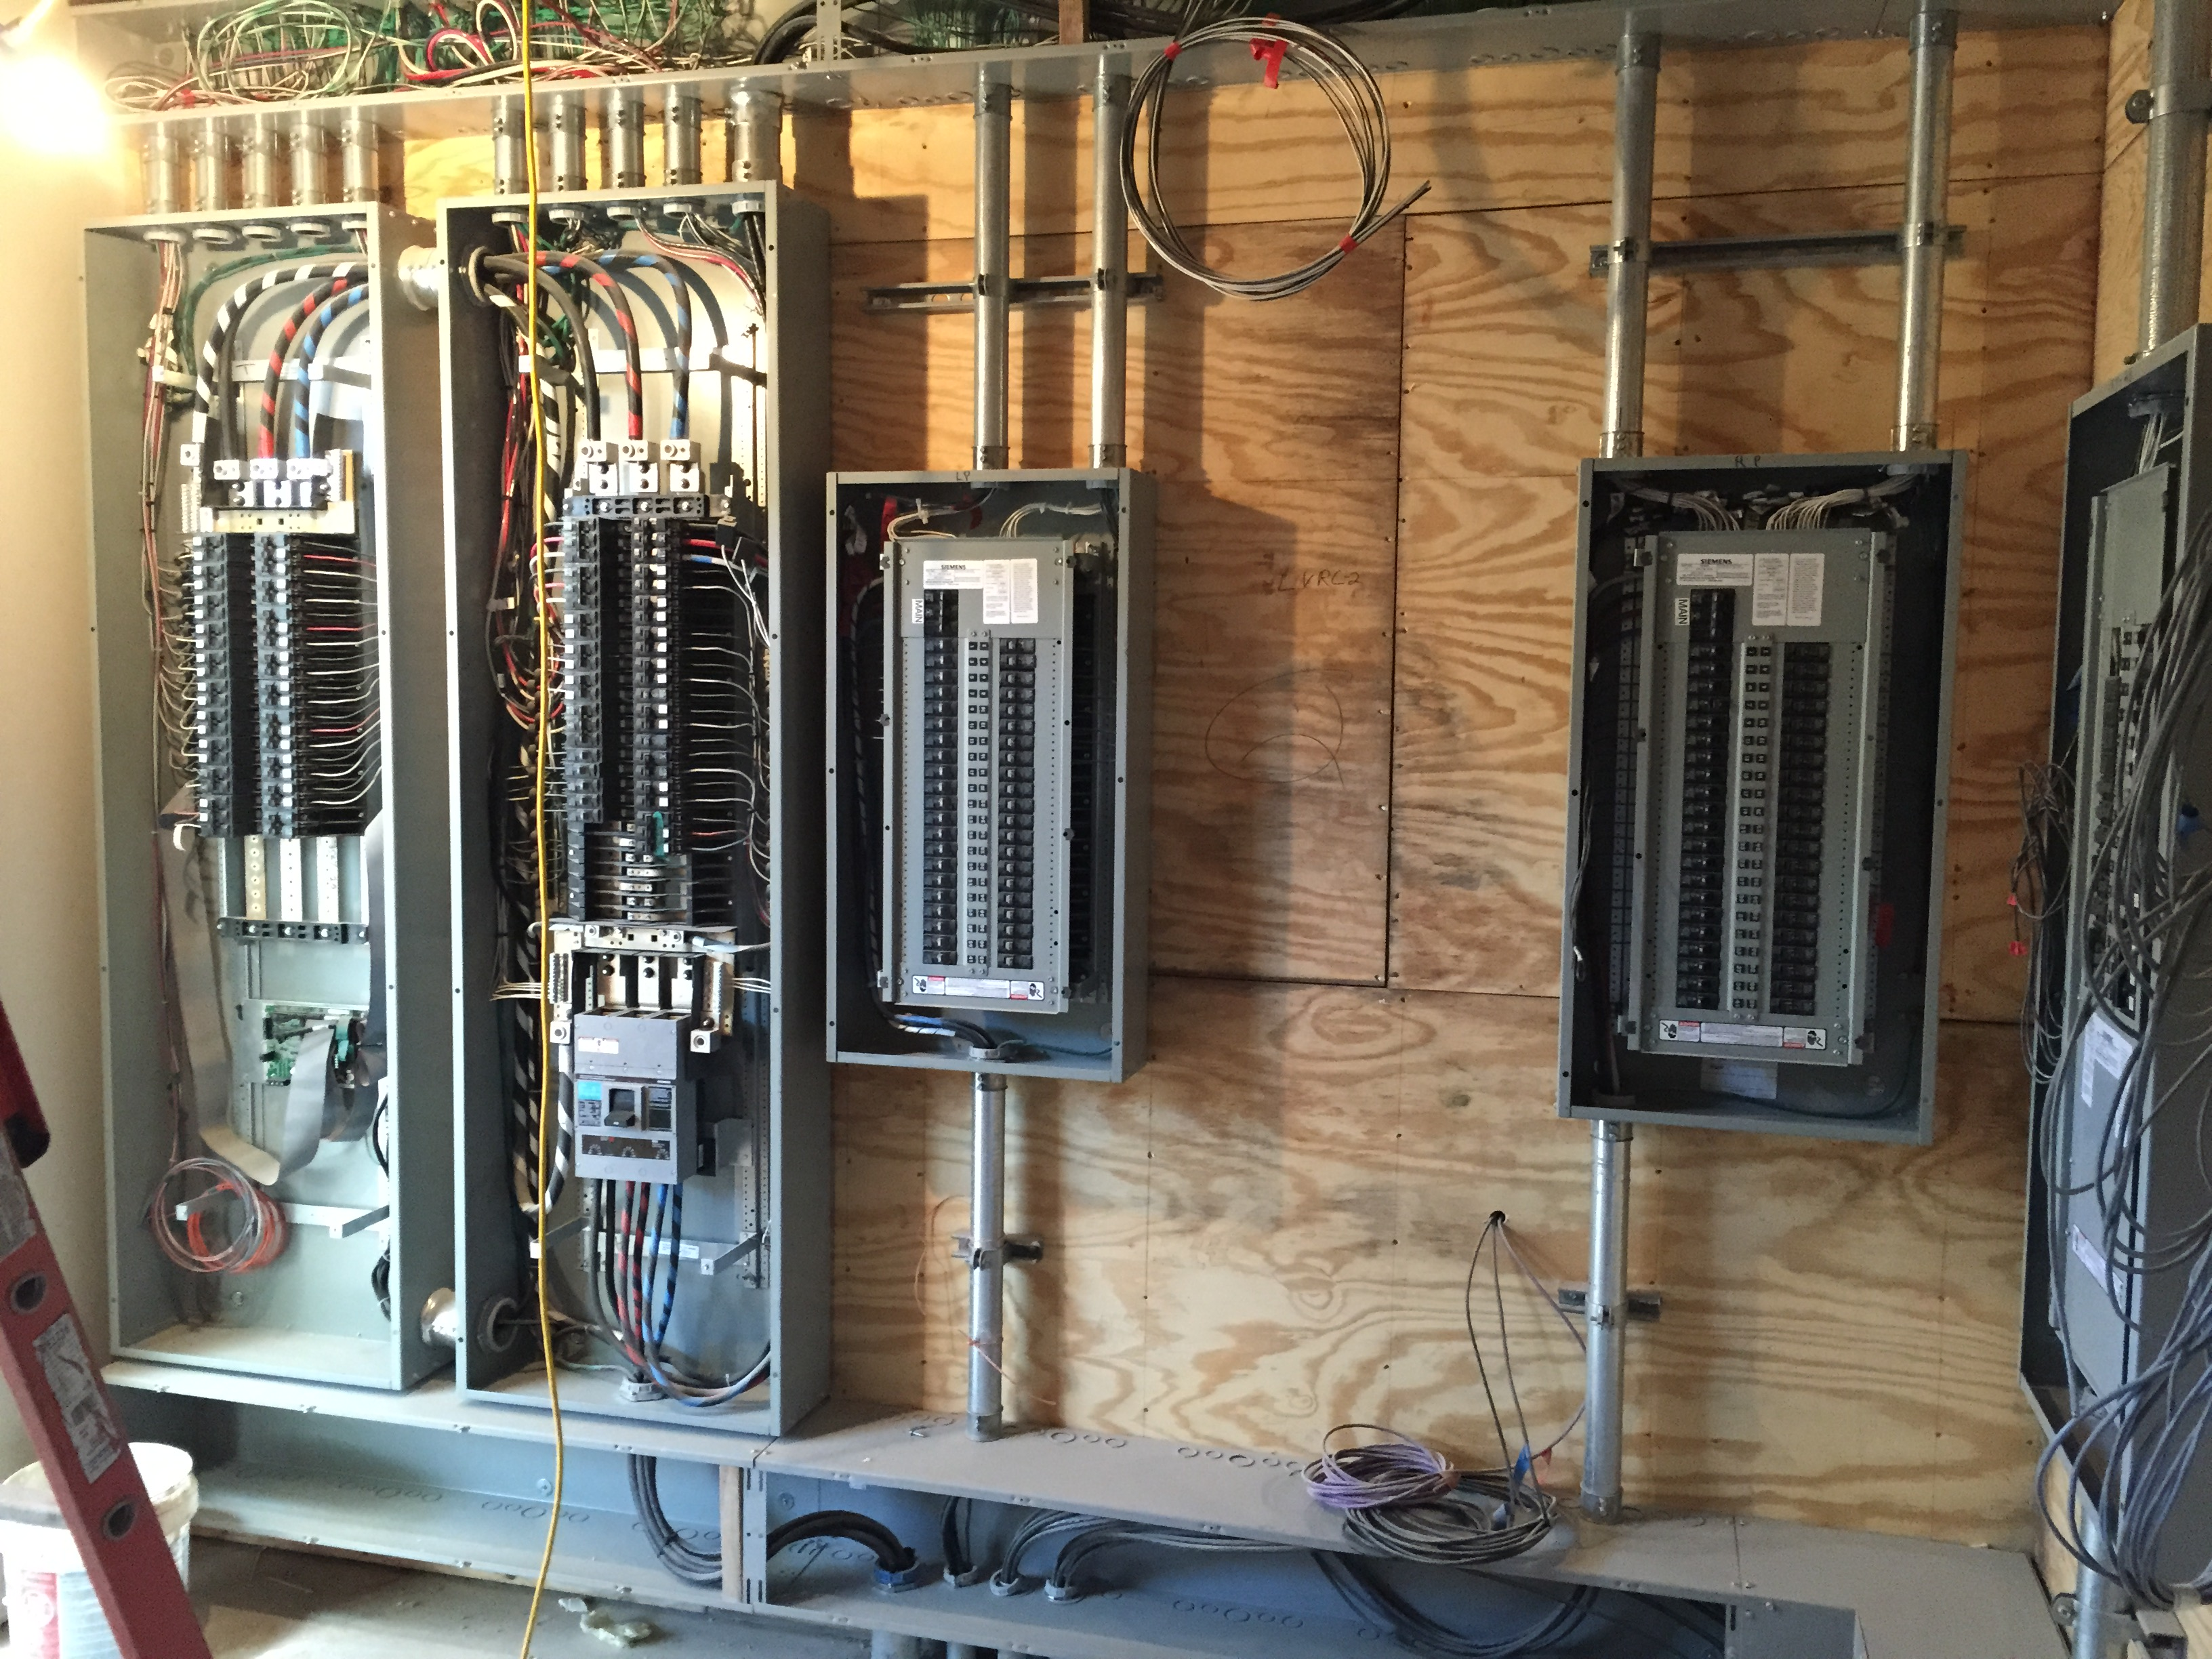 Commercial Electric Innovative Electrical Contracting Your Wiring Systems Distribution Sub Panels At The Willow School In Gladstone Nj